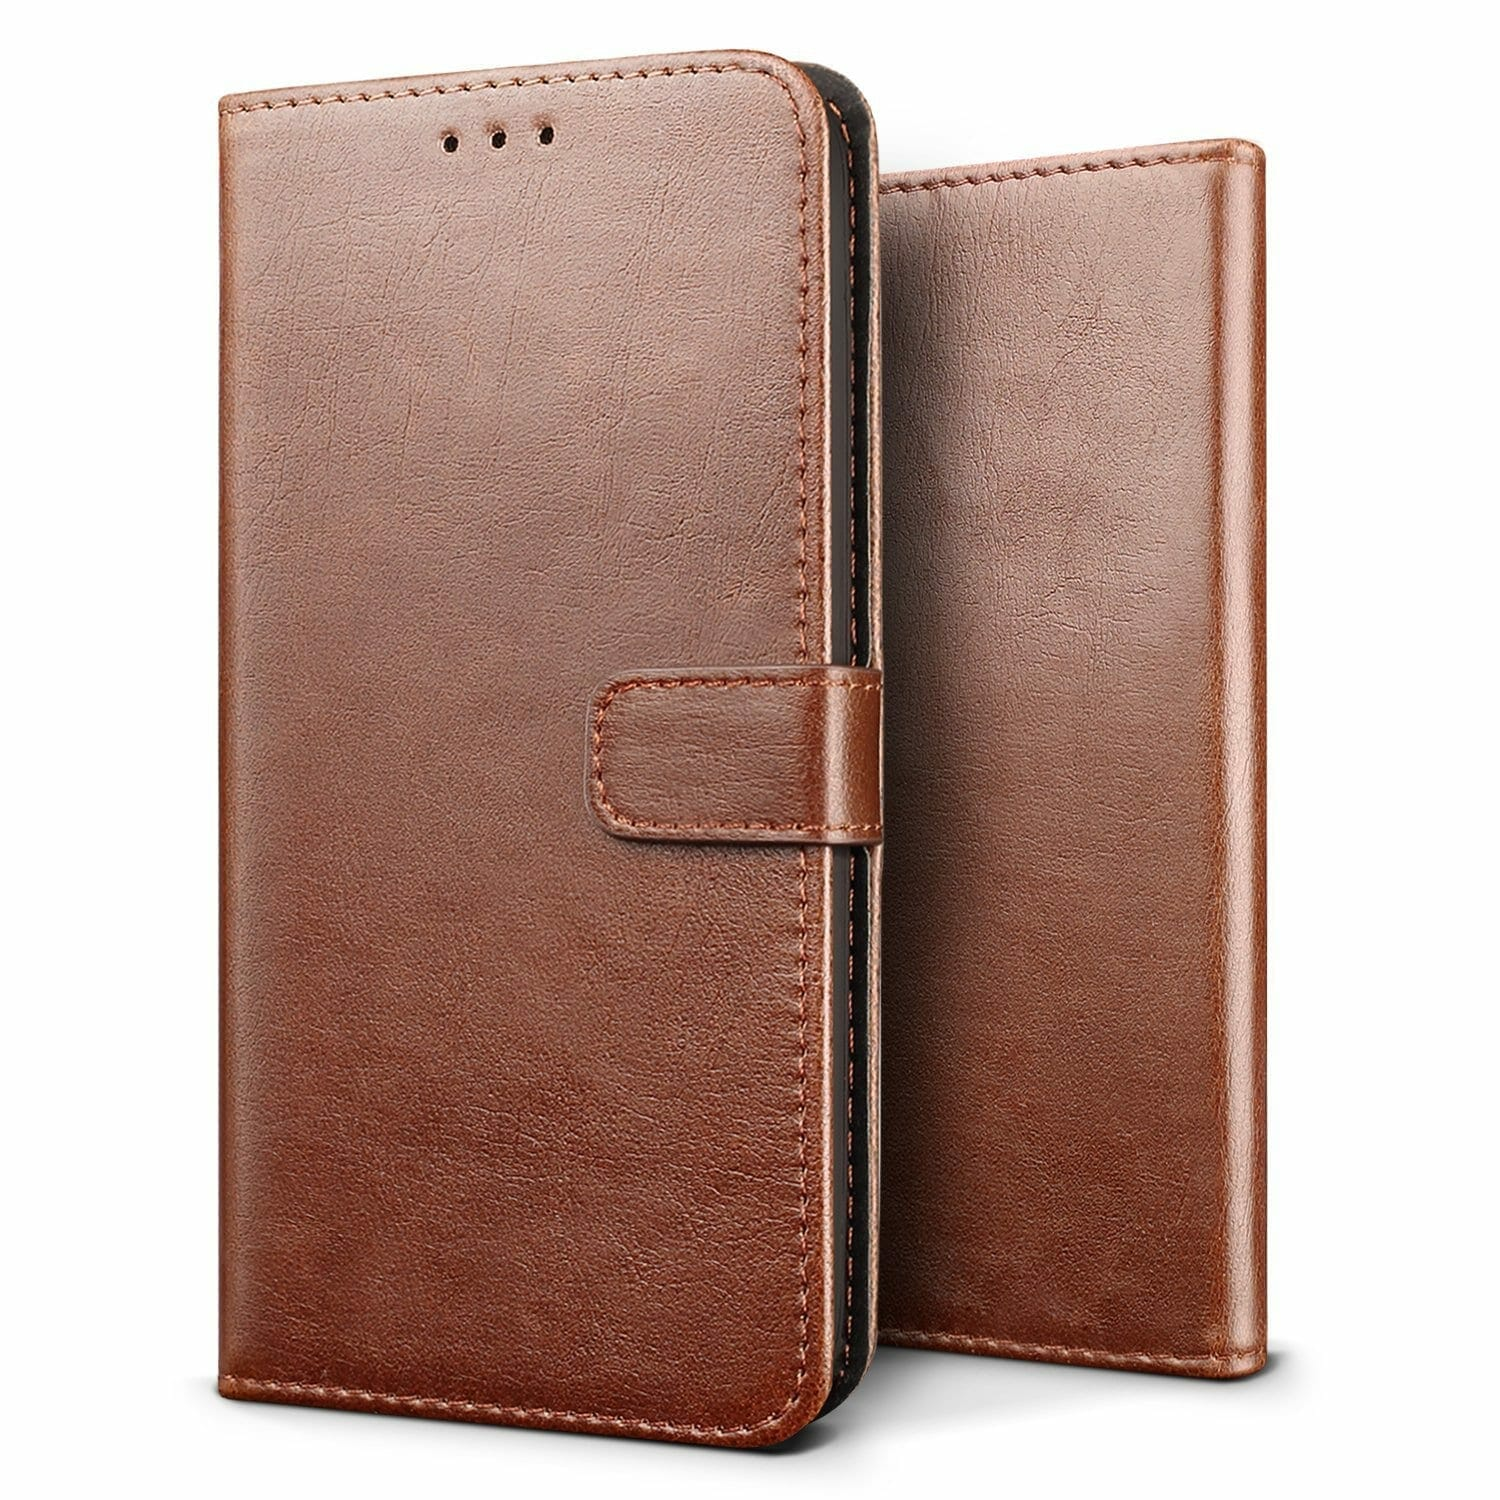 Note 8 leather case